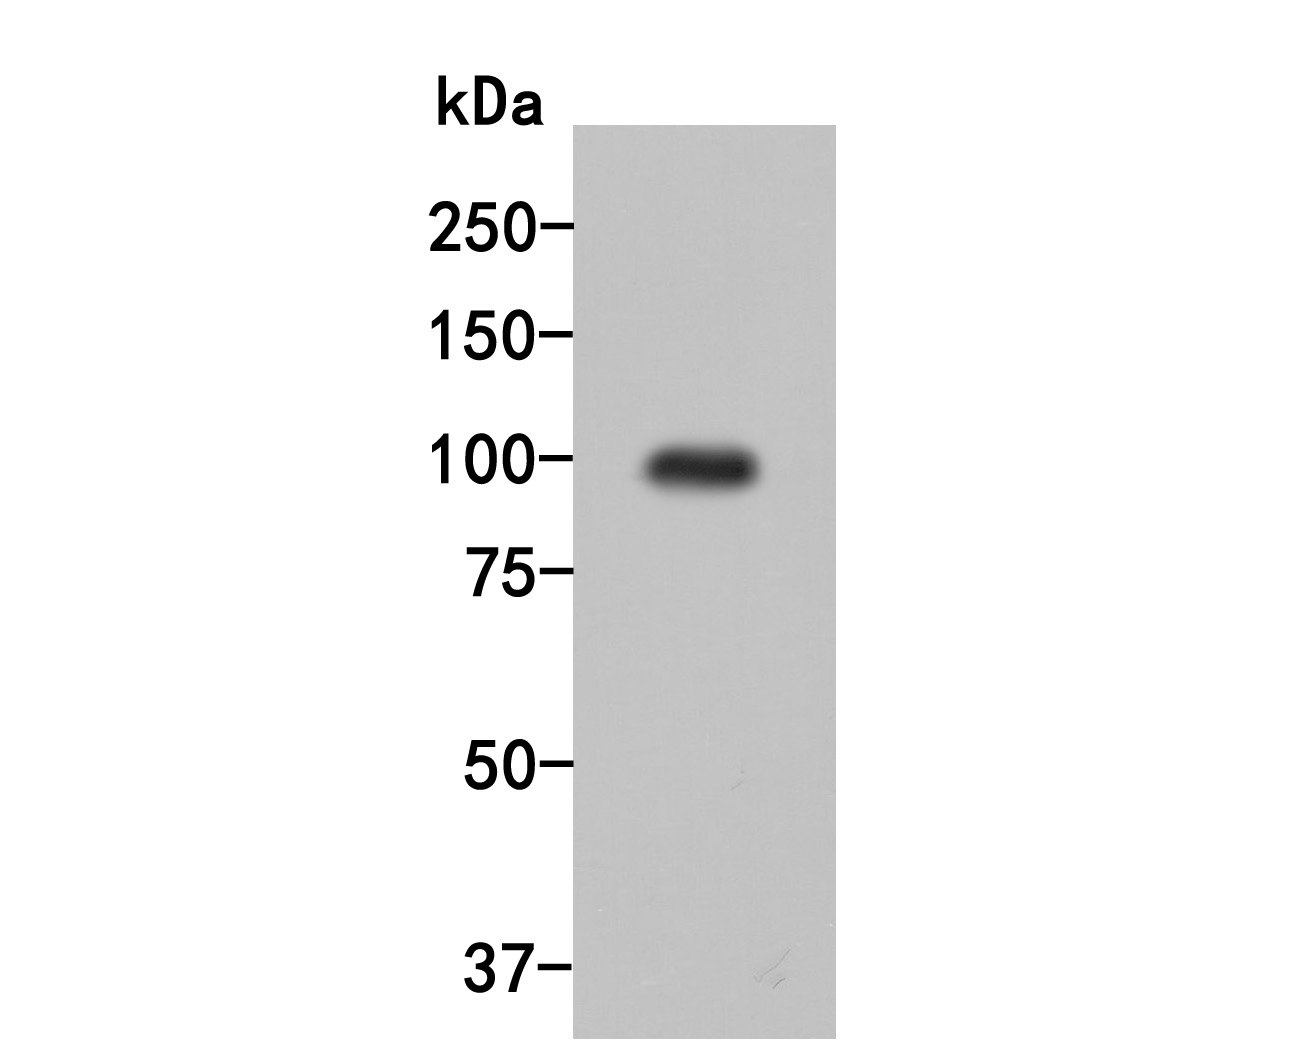 Western blot analysis of Dynamin 3 on human brain tissue lysates. Proteins were transferred to a PVDF membrane and blocked with 5% BSA in PBS for 1 hour at room temperature. The primary antibody (HA500032, 1/500) was used in 5% BSA at room temperature for 2 hours. Goat Anti-Rabbit IgG - HRP Secondary Antibody (HA1001) at 1:5,000 dilution was used for 1 hour at room temperature.